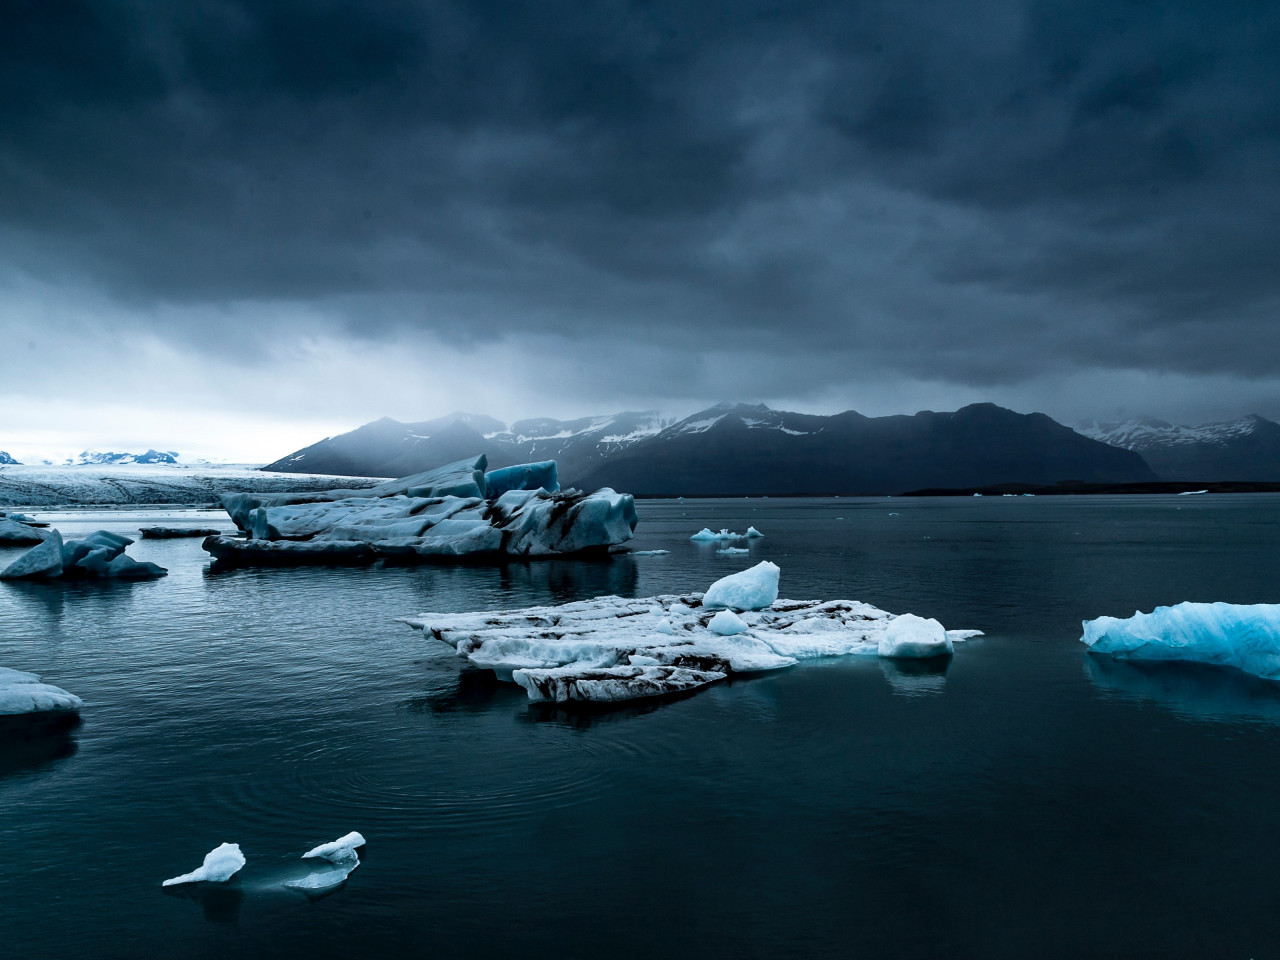 Icebergs, ocean in Iceland wallpaper 1280x960